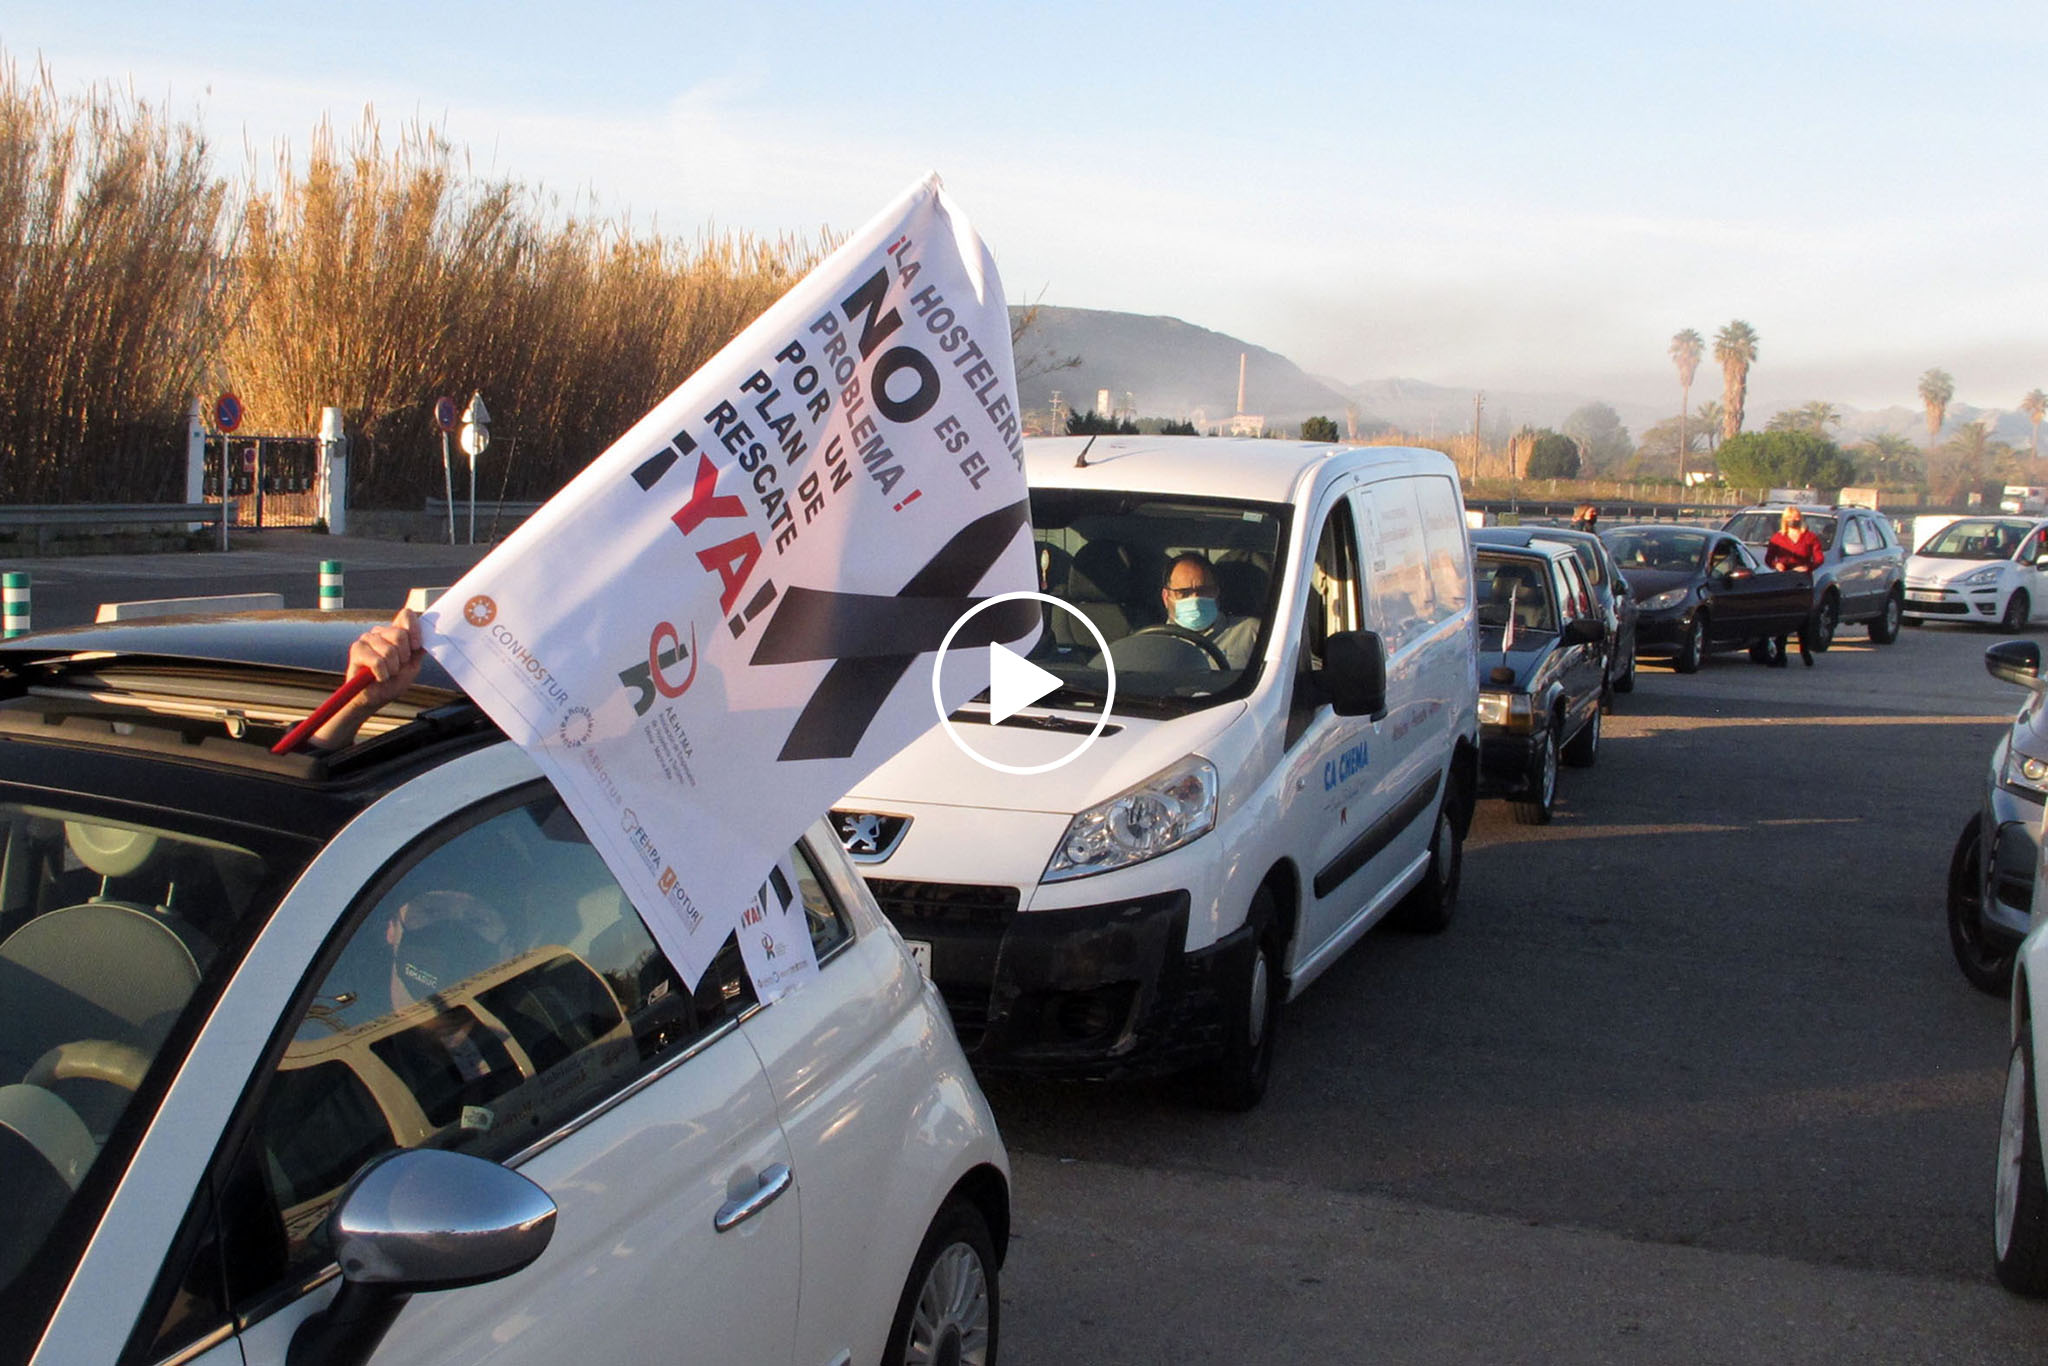 Play car demonstration in Dénia of the hospitality industry